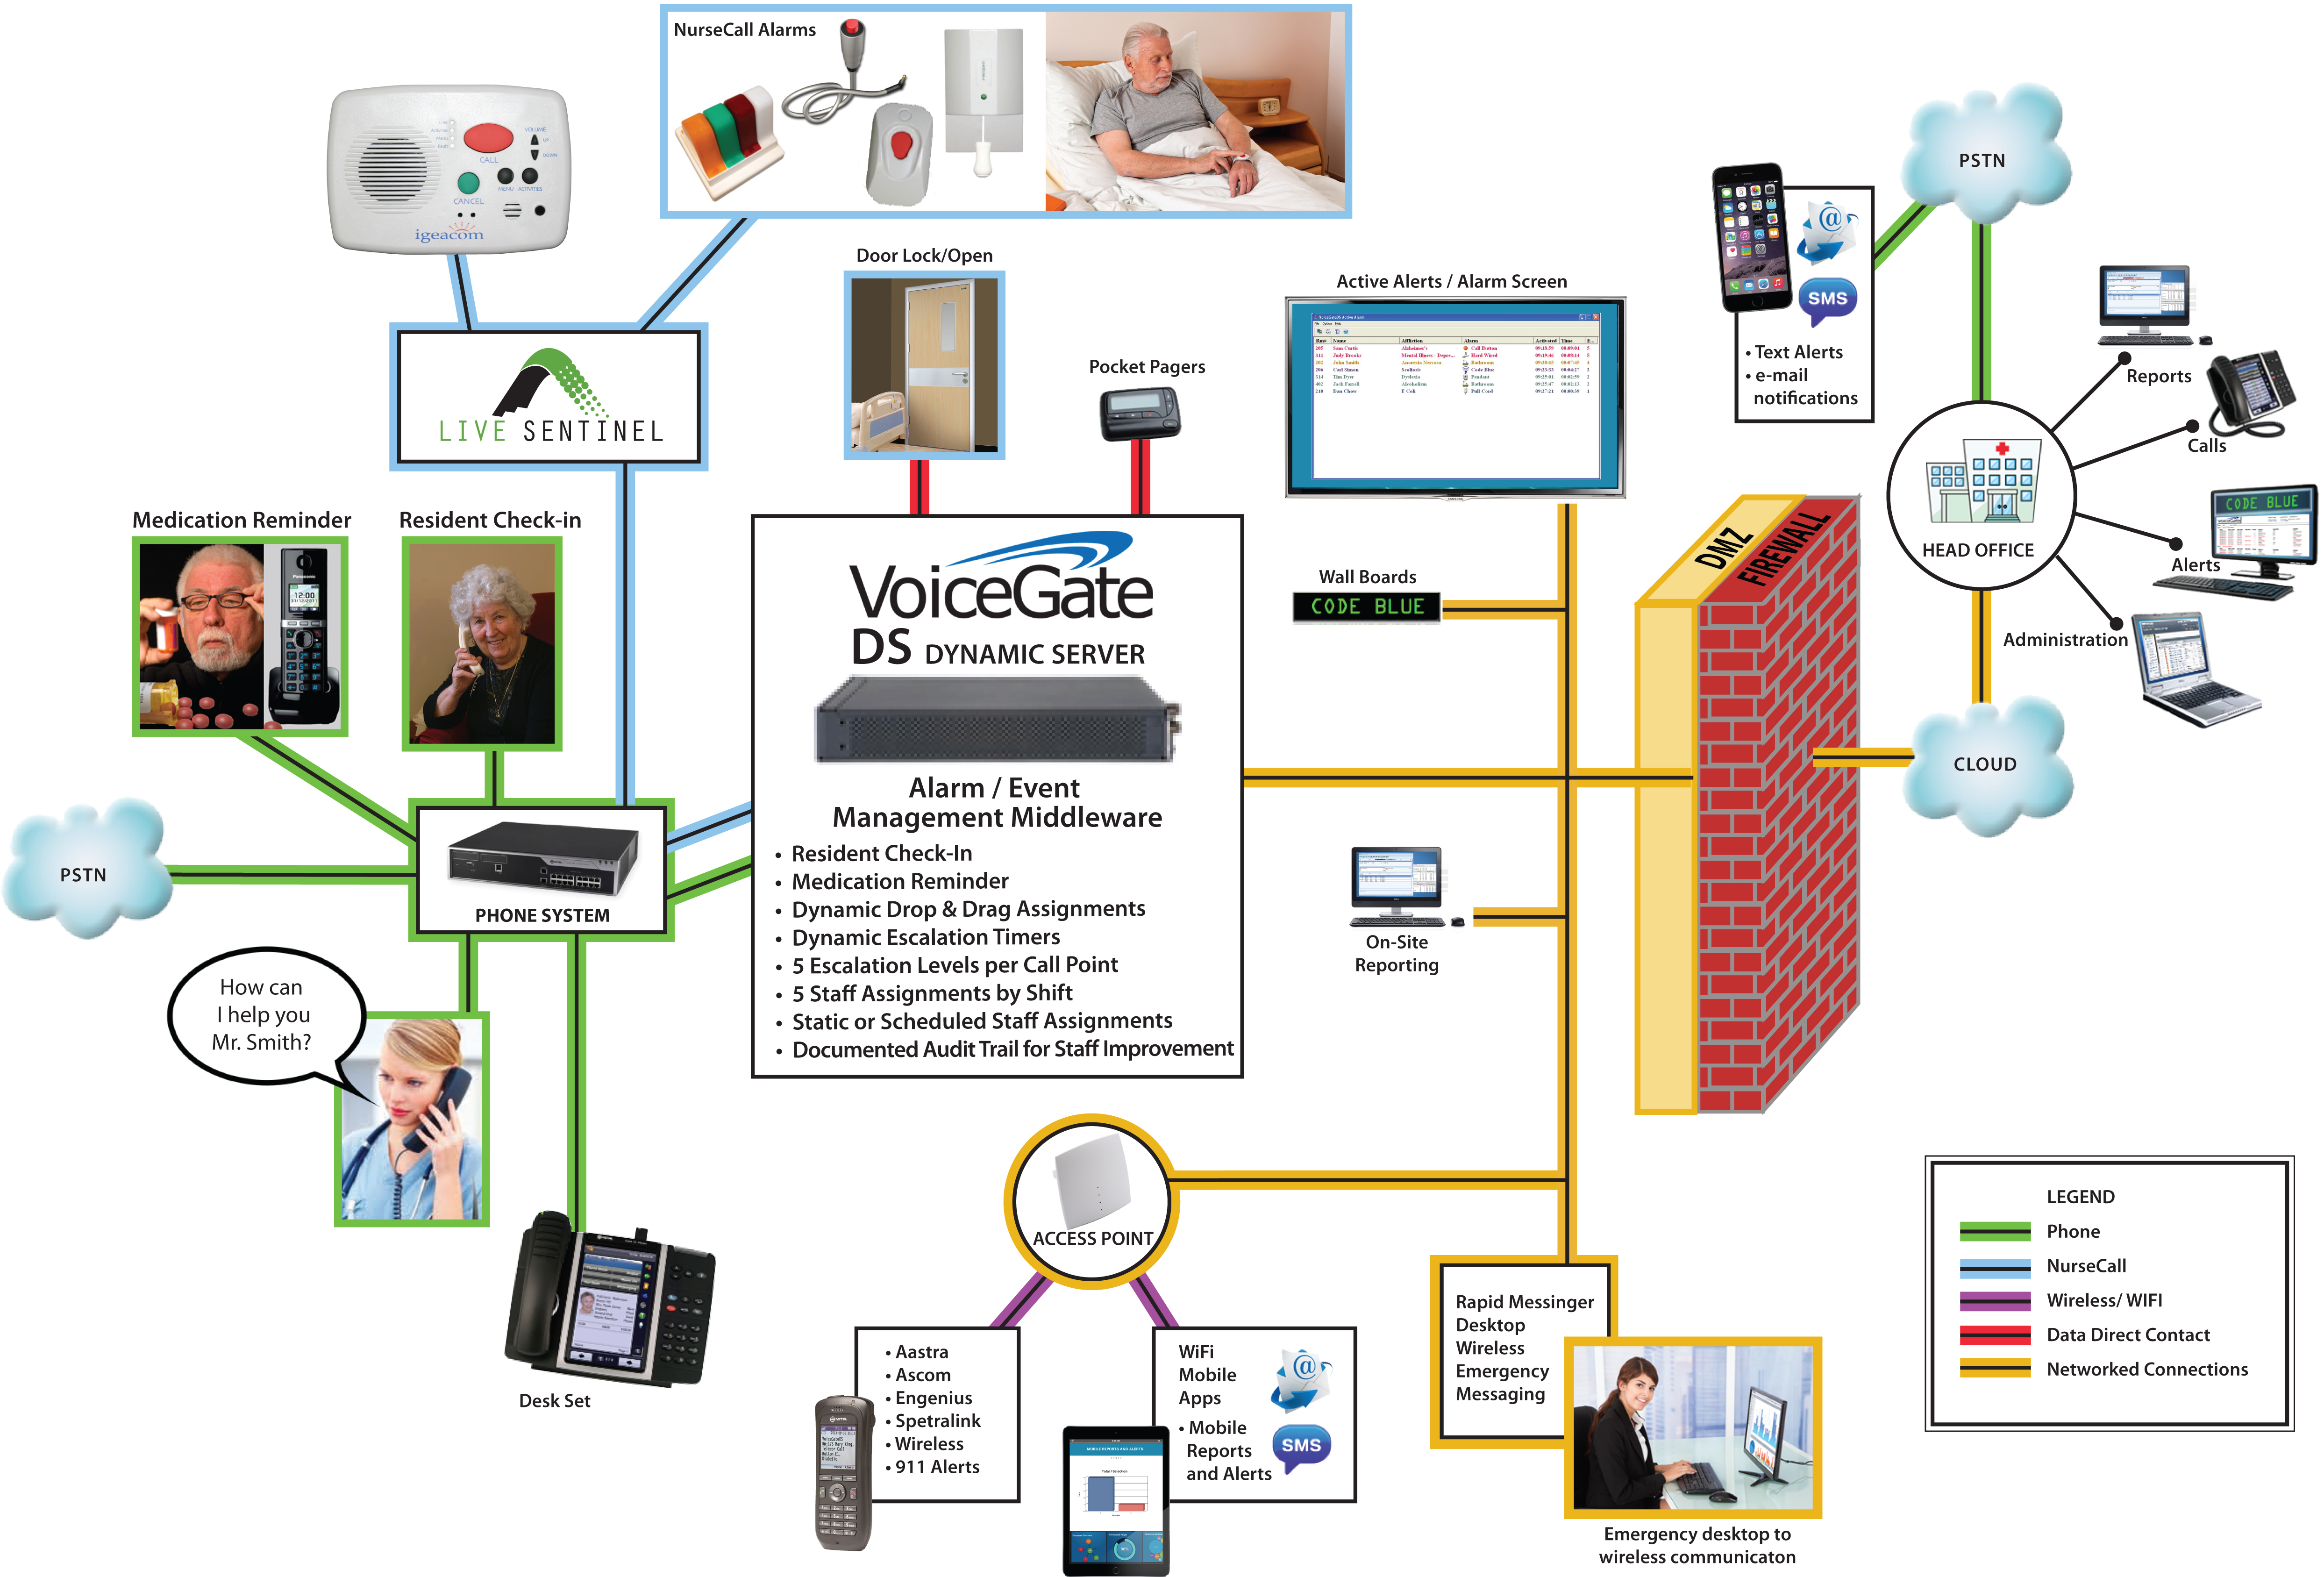 Nursecall_LiveSentinel_BG Rauland Nurse Call Systems Wiring Diagram on light indicator, code blue, single button, panel pt rounding button, wall box, chair alarm, button station, hopsitals ku medical center, custom buttons,